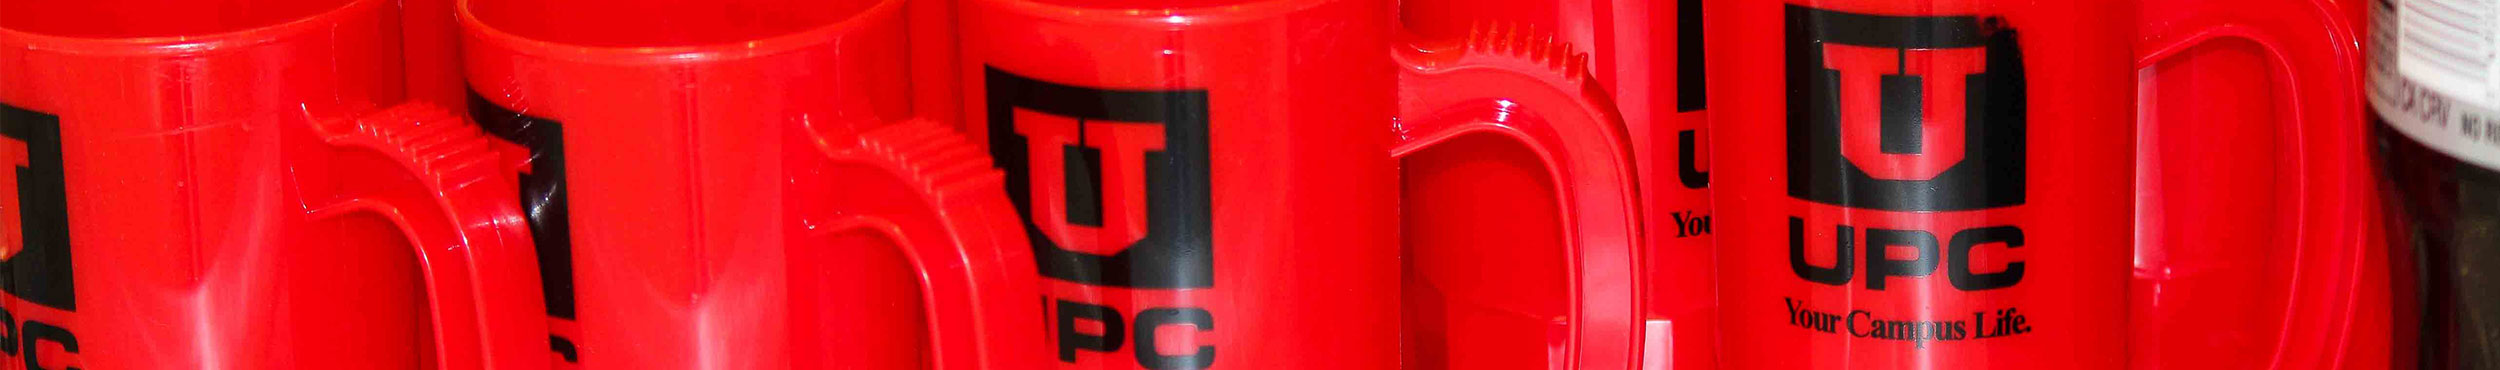 A photo of red, plastic mugs with the UPC logo printed on them.